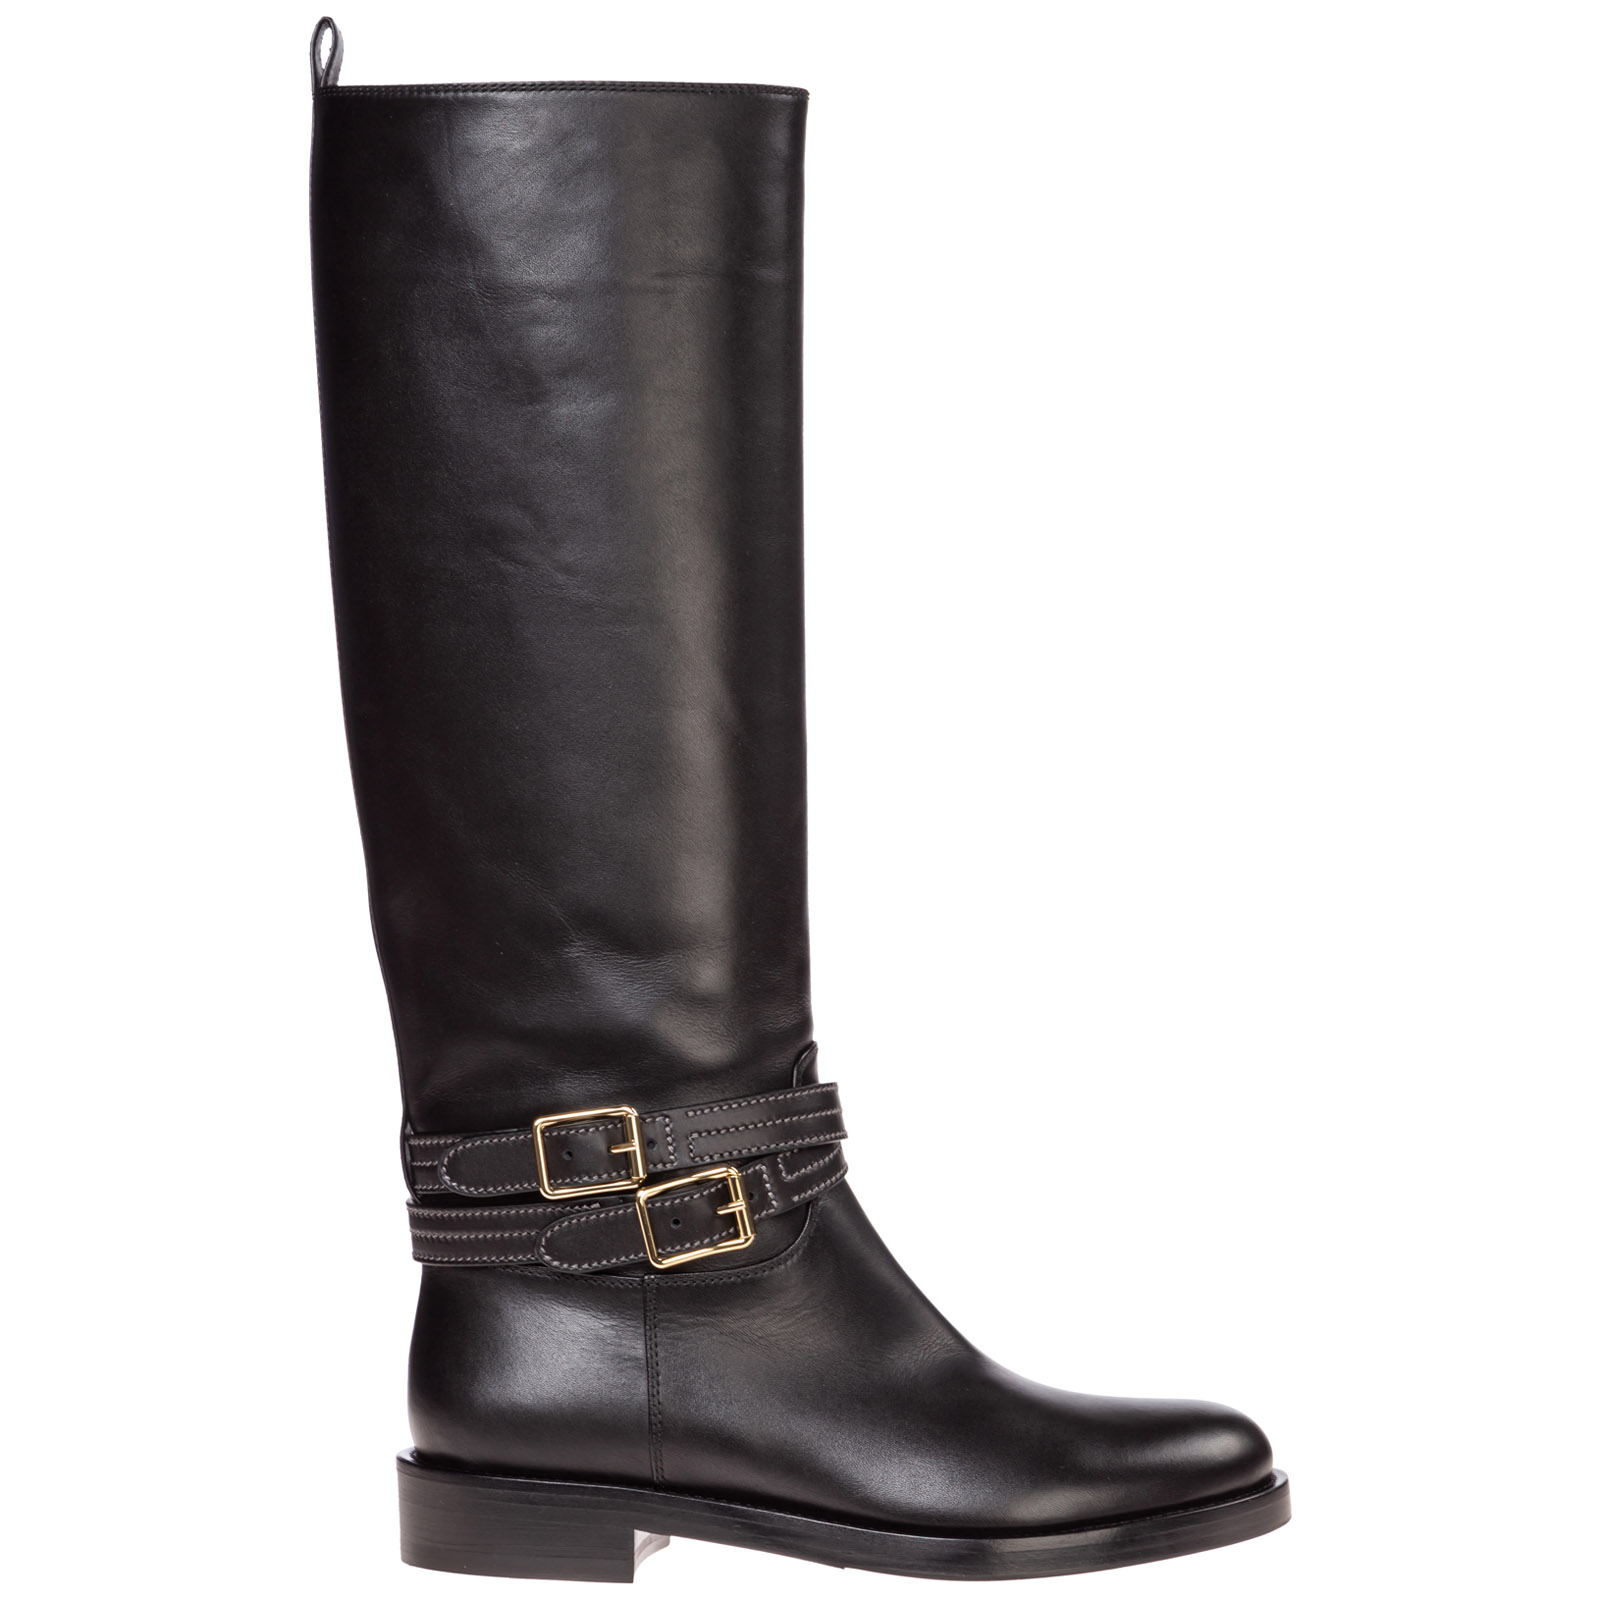 Gianvito Rossi Boots WOMEN'S LEATHER BOOTS  MANOR